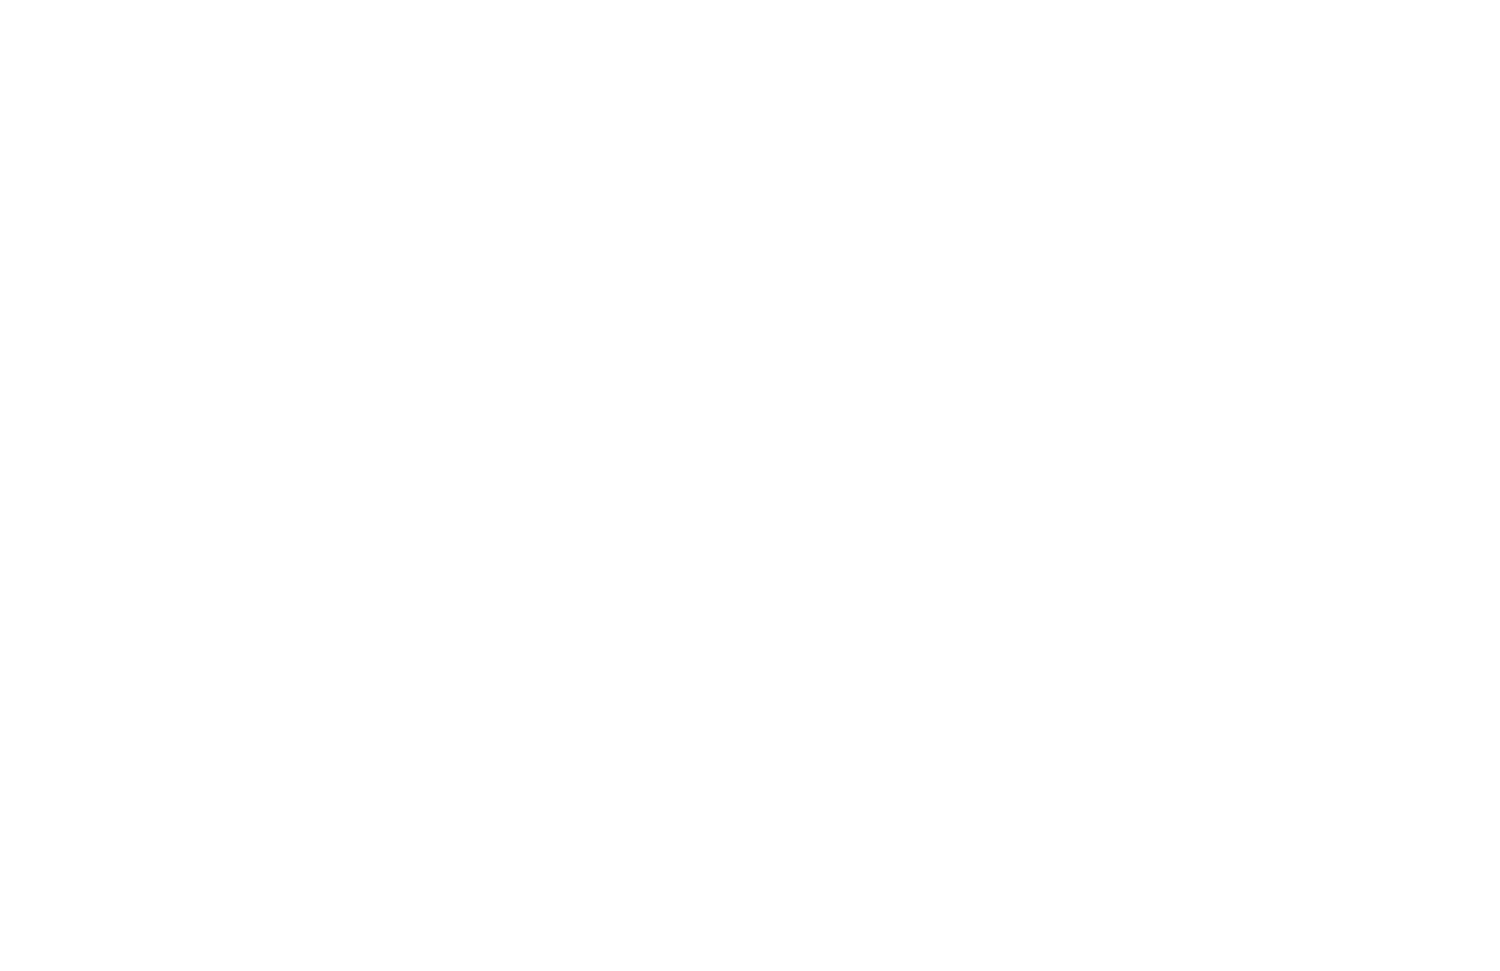 Washington Concert Opera